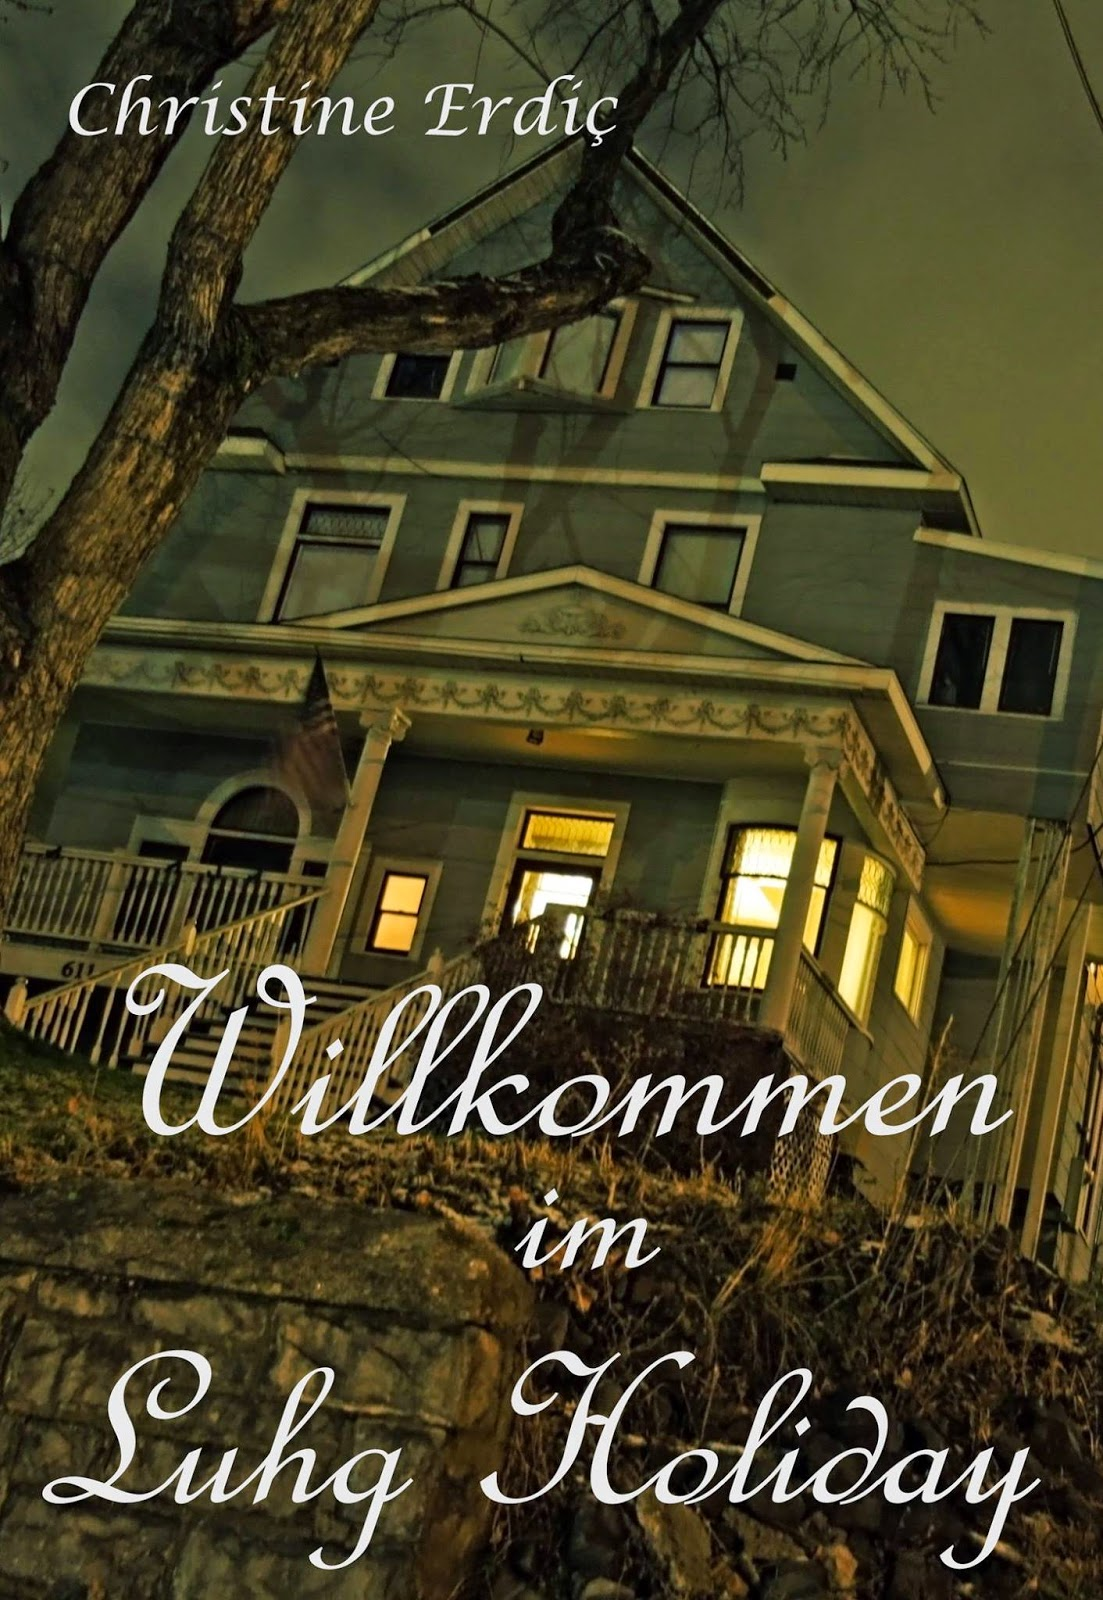 http://www.amazon.de/Willkommen-Luhg-Holiday-Christine-Erdi%C3%A7-ebook/dp/B00SVGYD12/ref=cm_cr_pr_pb_t